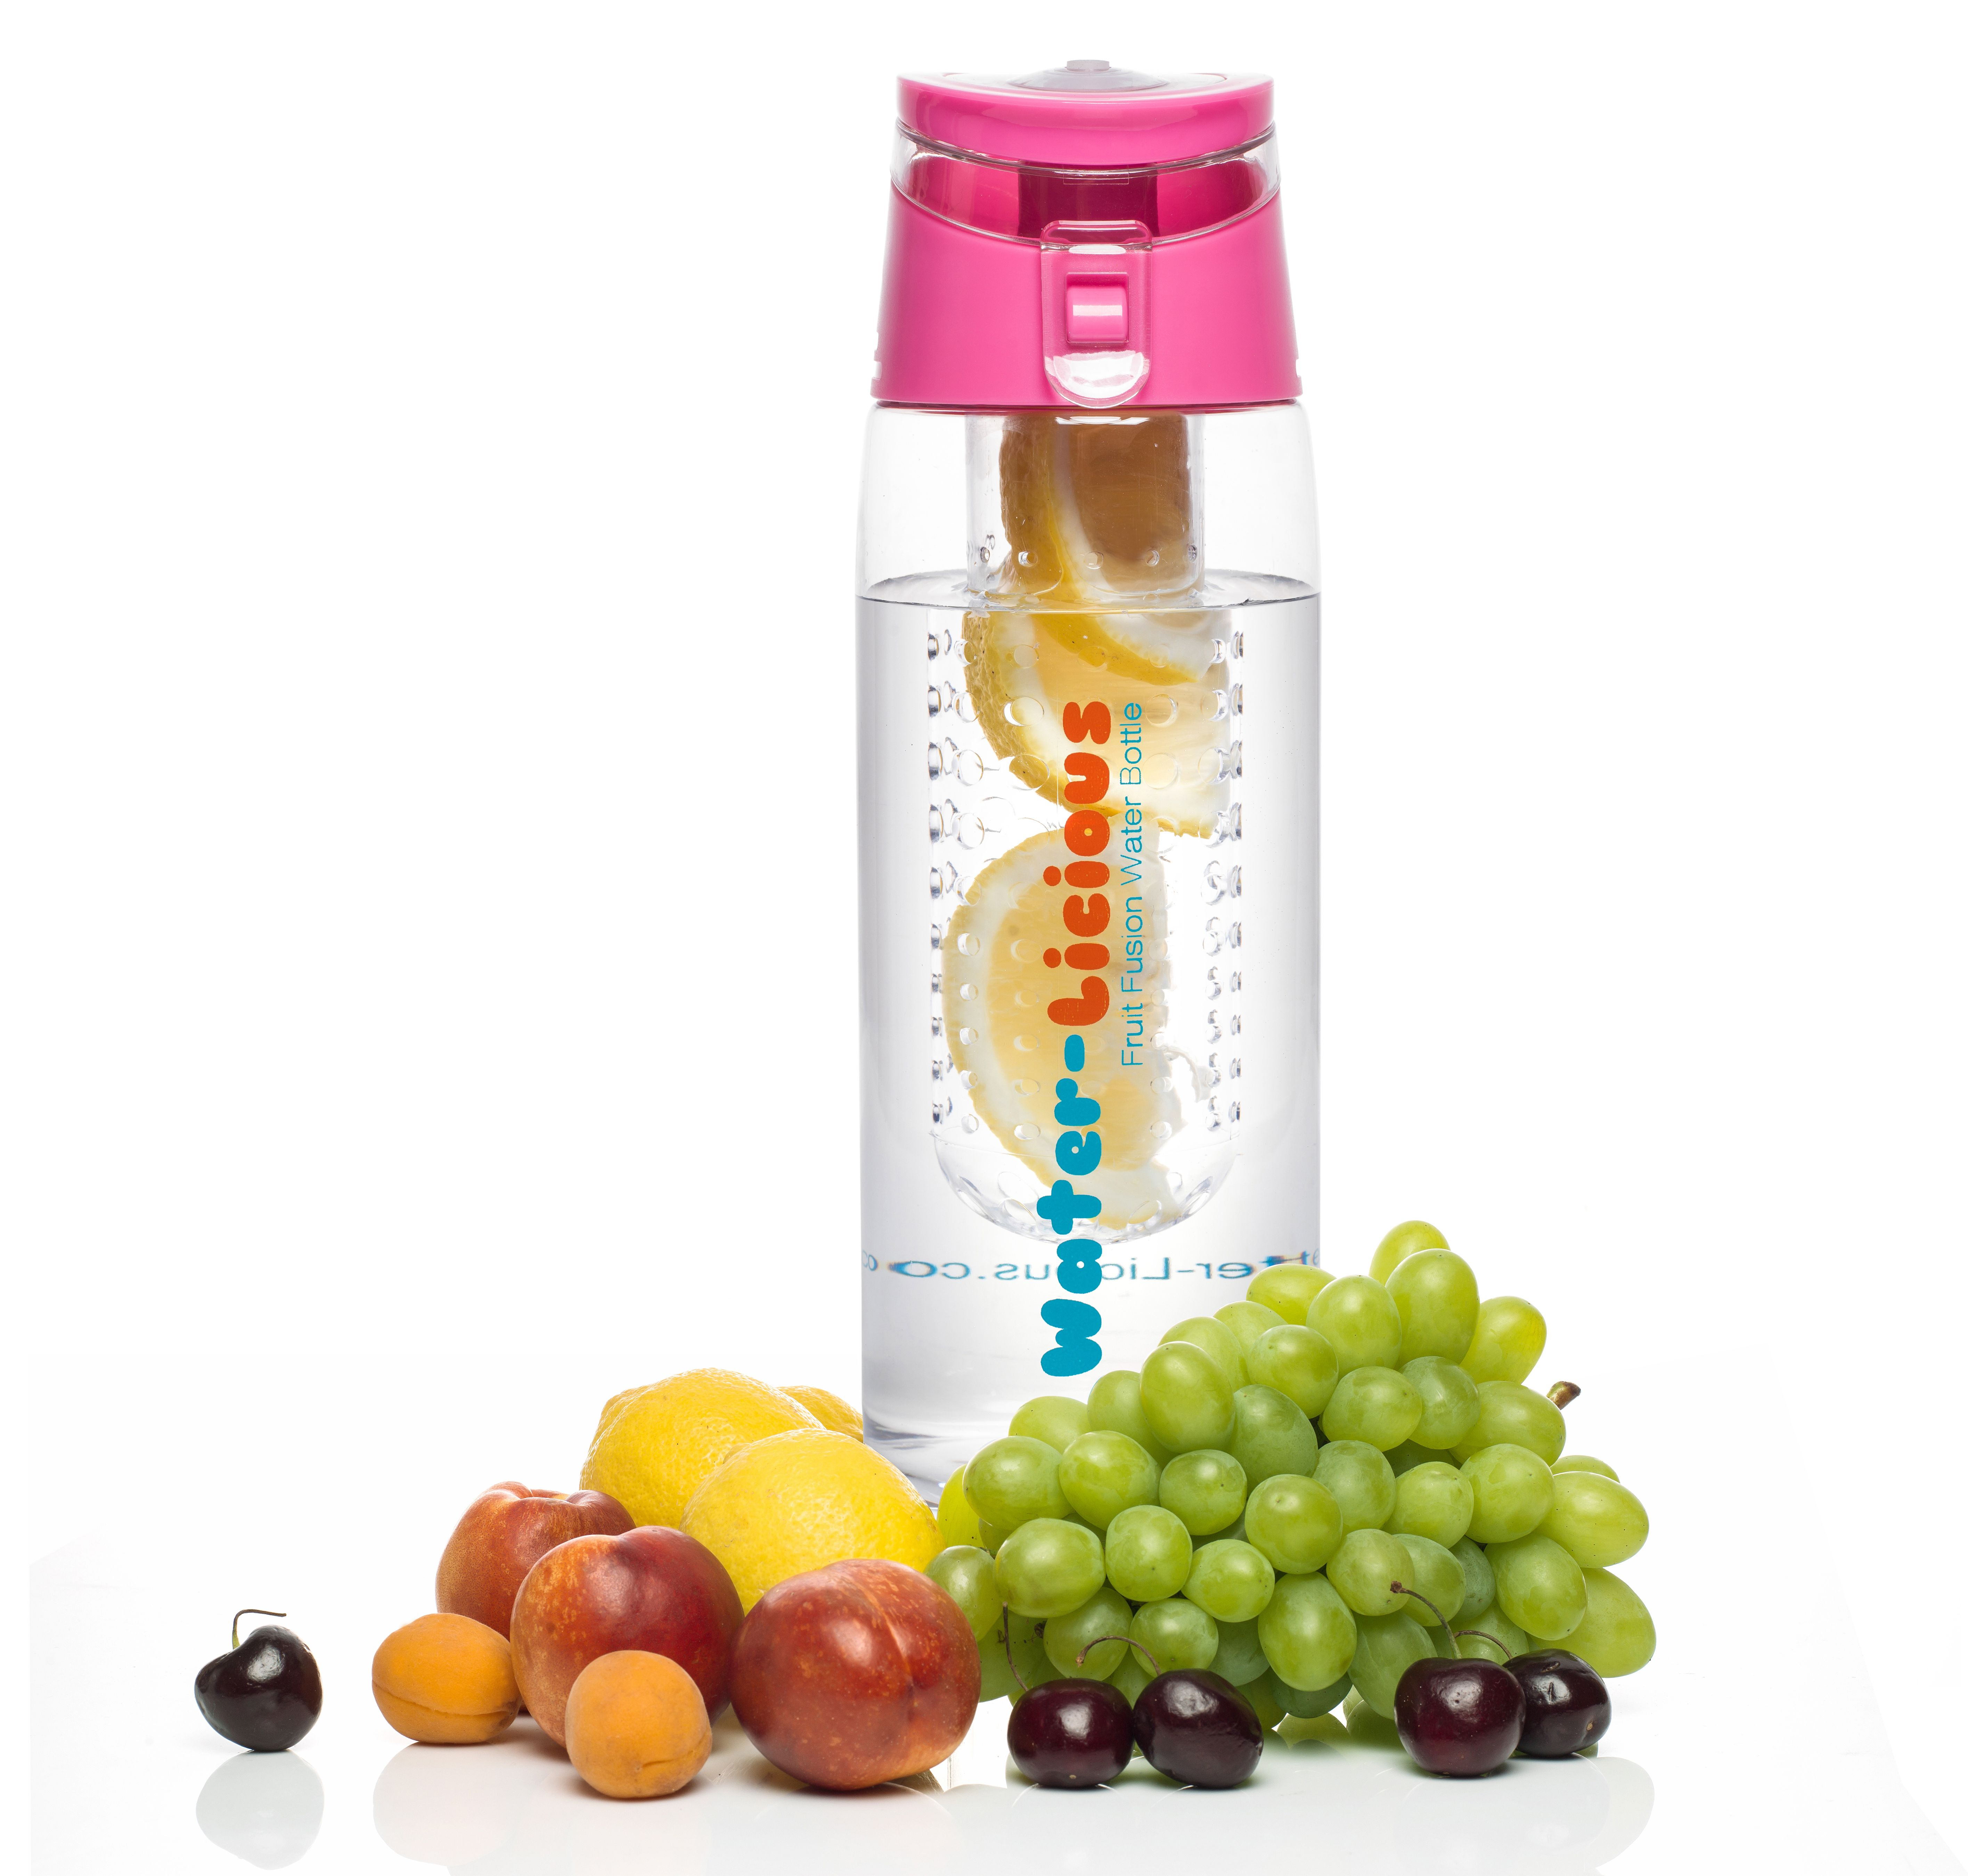 8ba88a5191 Water-Licious 24 Oz Fruit Infused Water Bottle made from BPA Free Tritan  Copolyester with flip top lid and easy carrying handle.